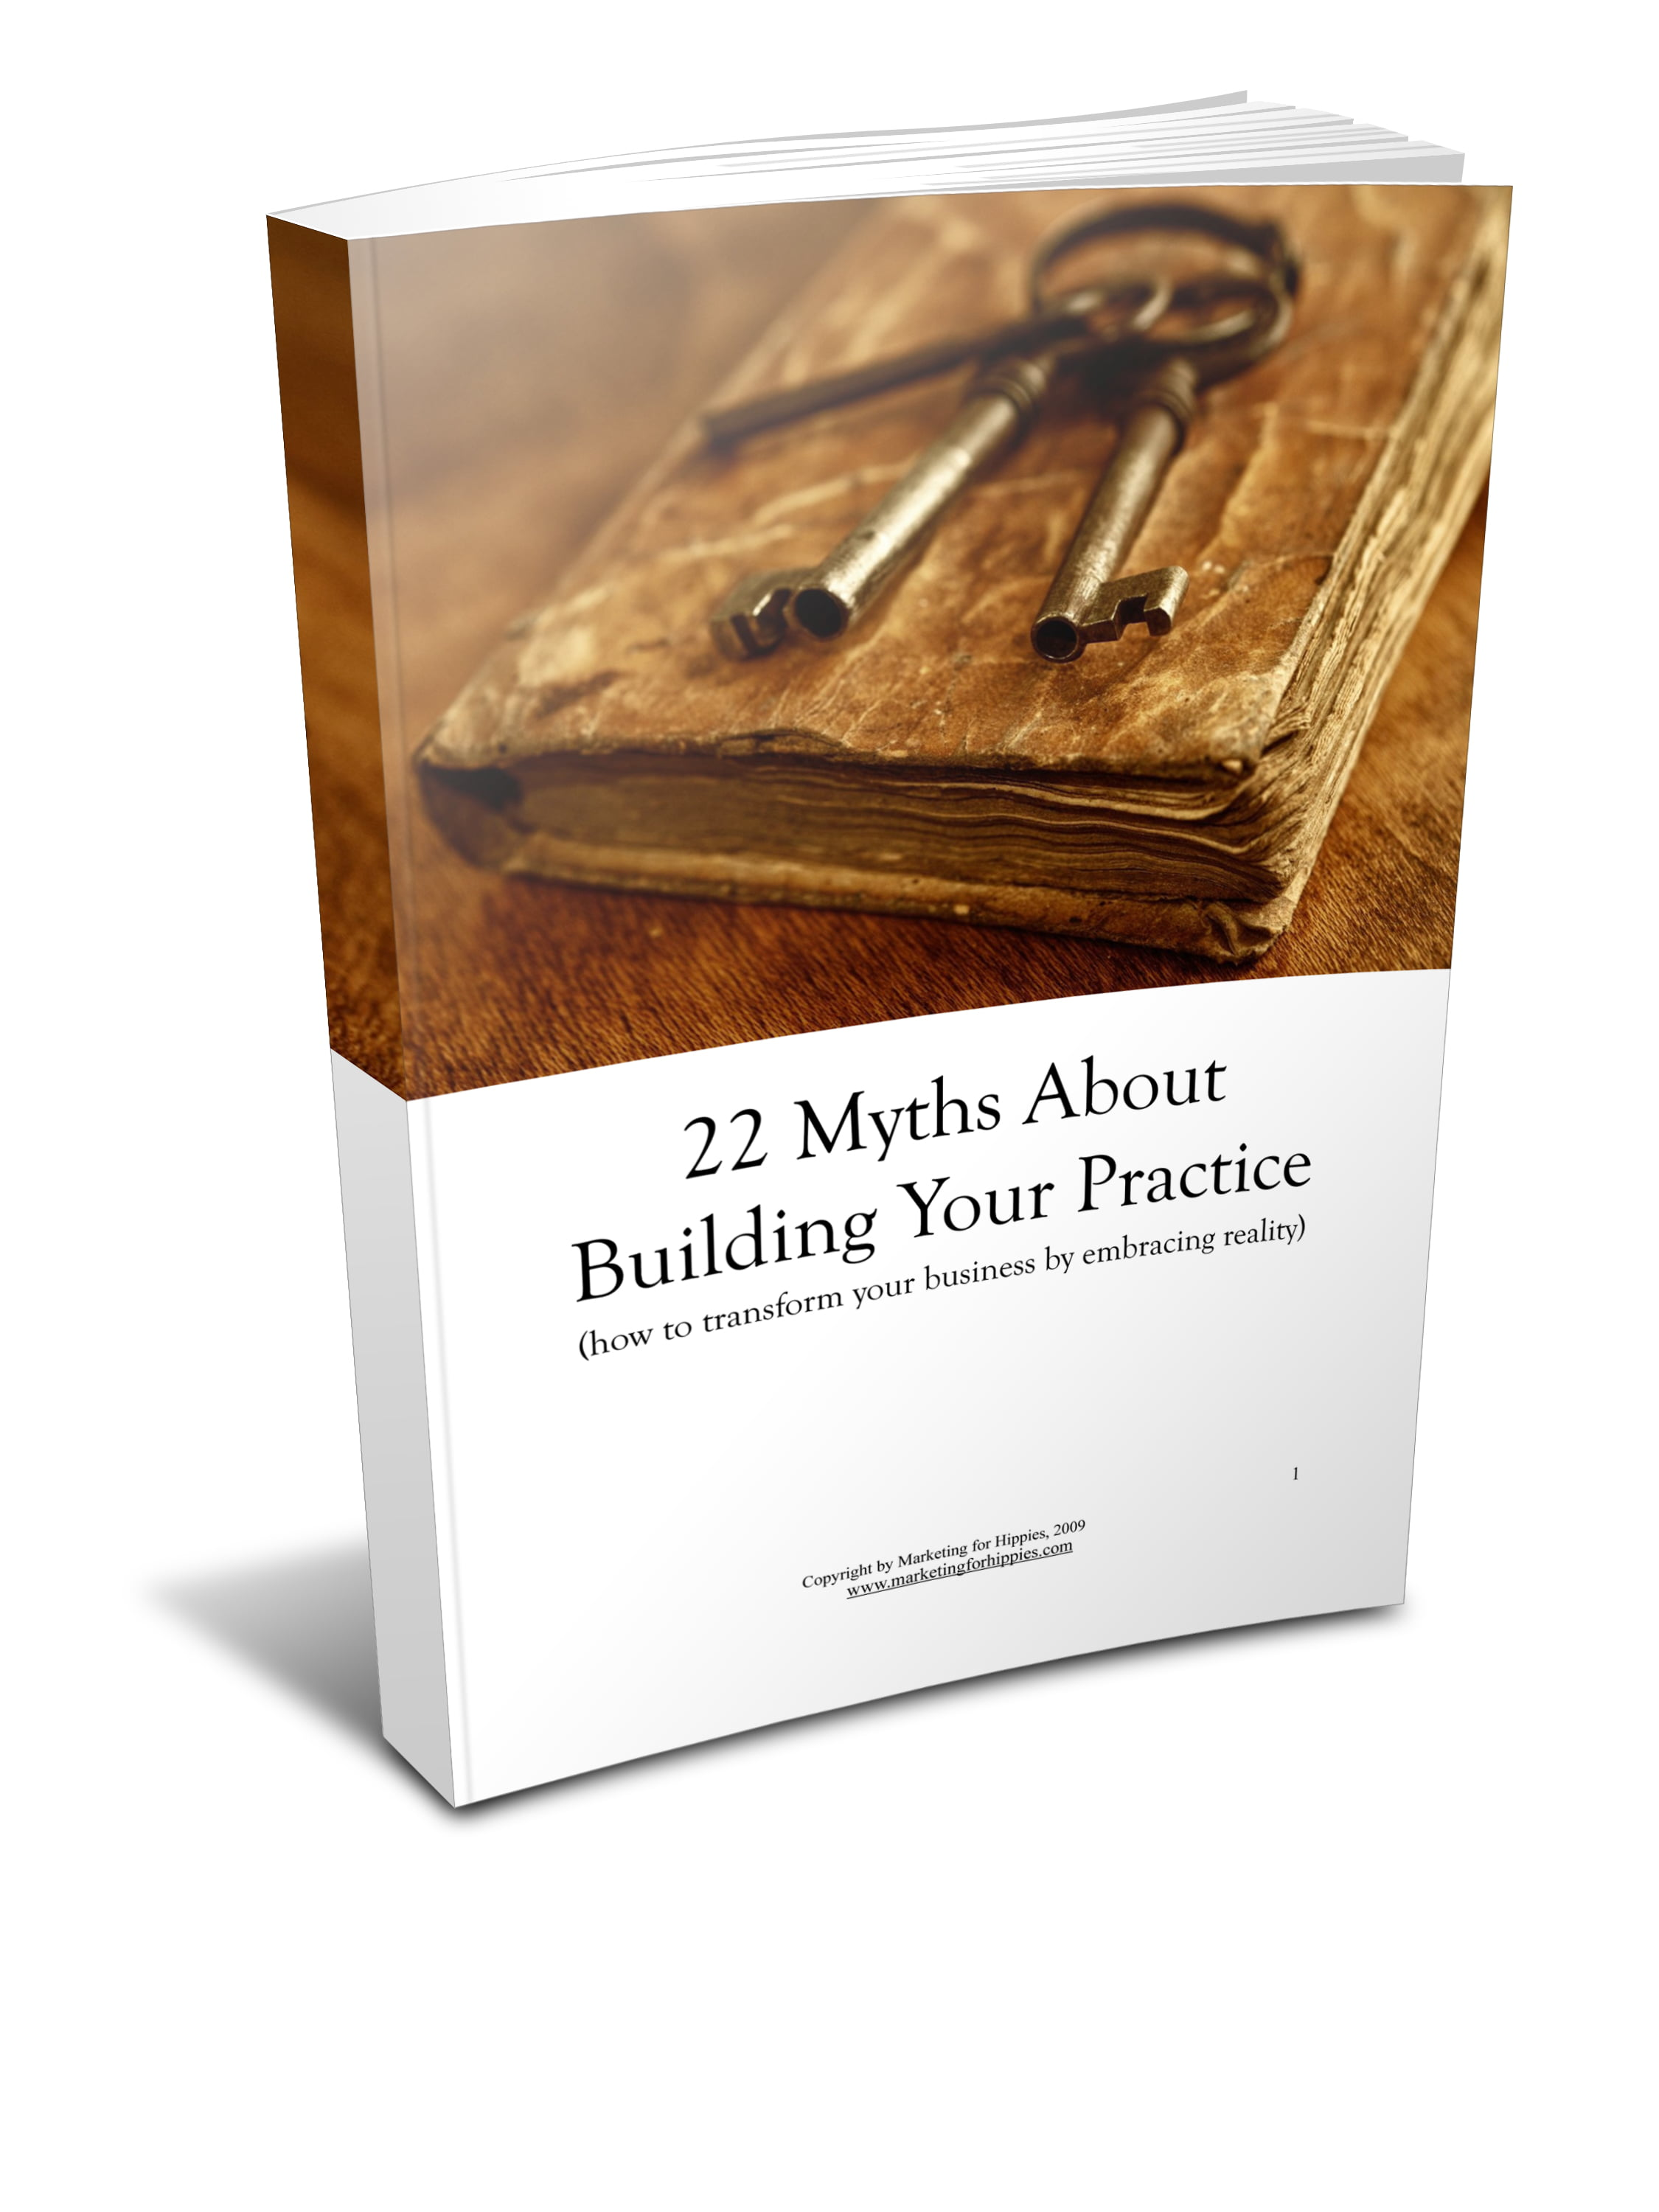 22 Myths About Building Your Practice: Learn Almost Two Dozen Ways You Might Be Unwittingly Sabotaging Your Own Success